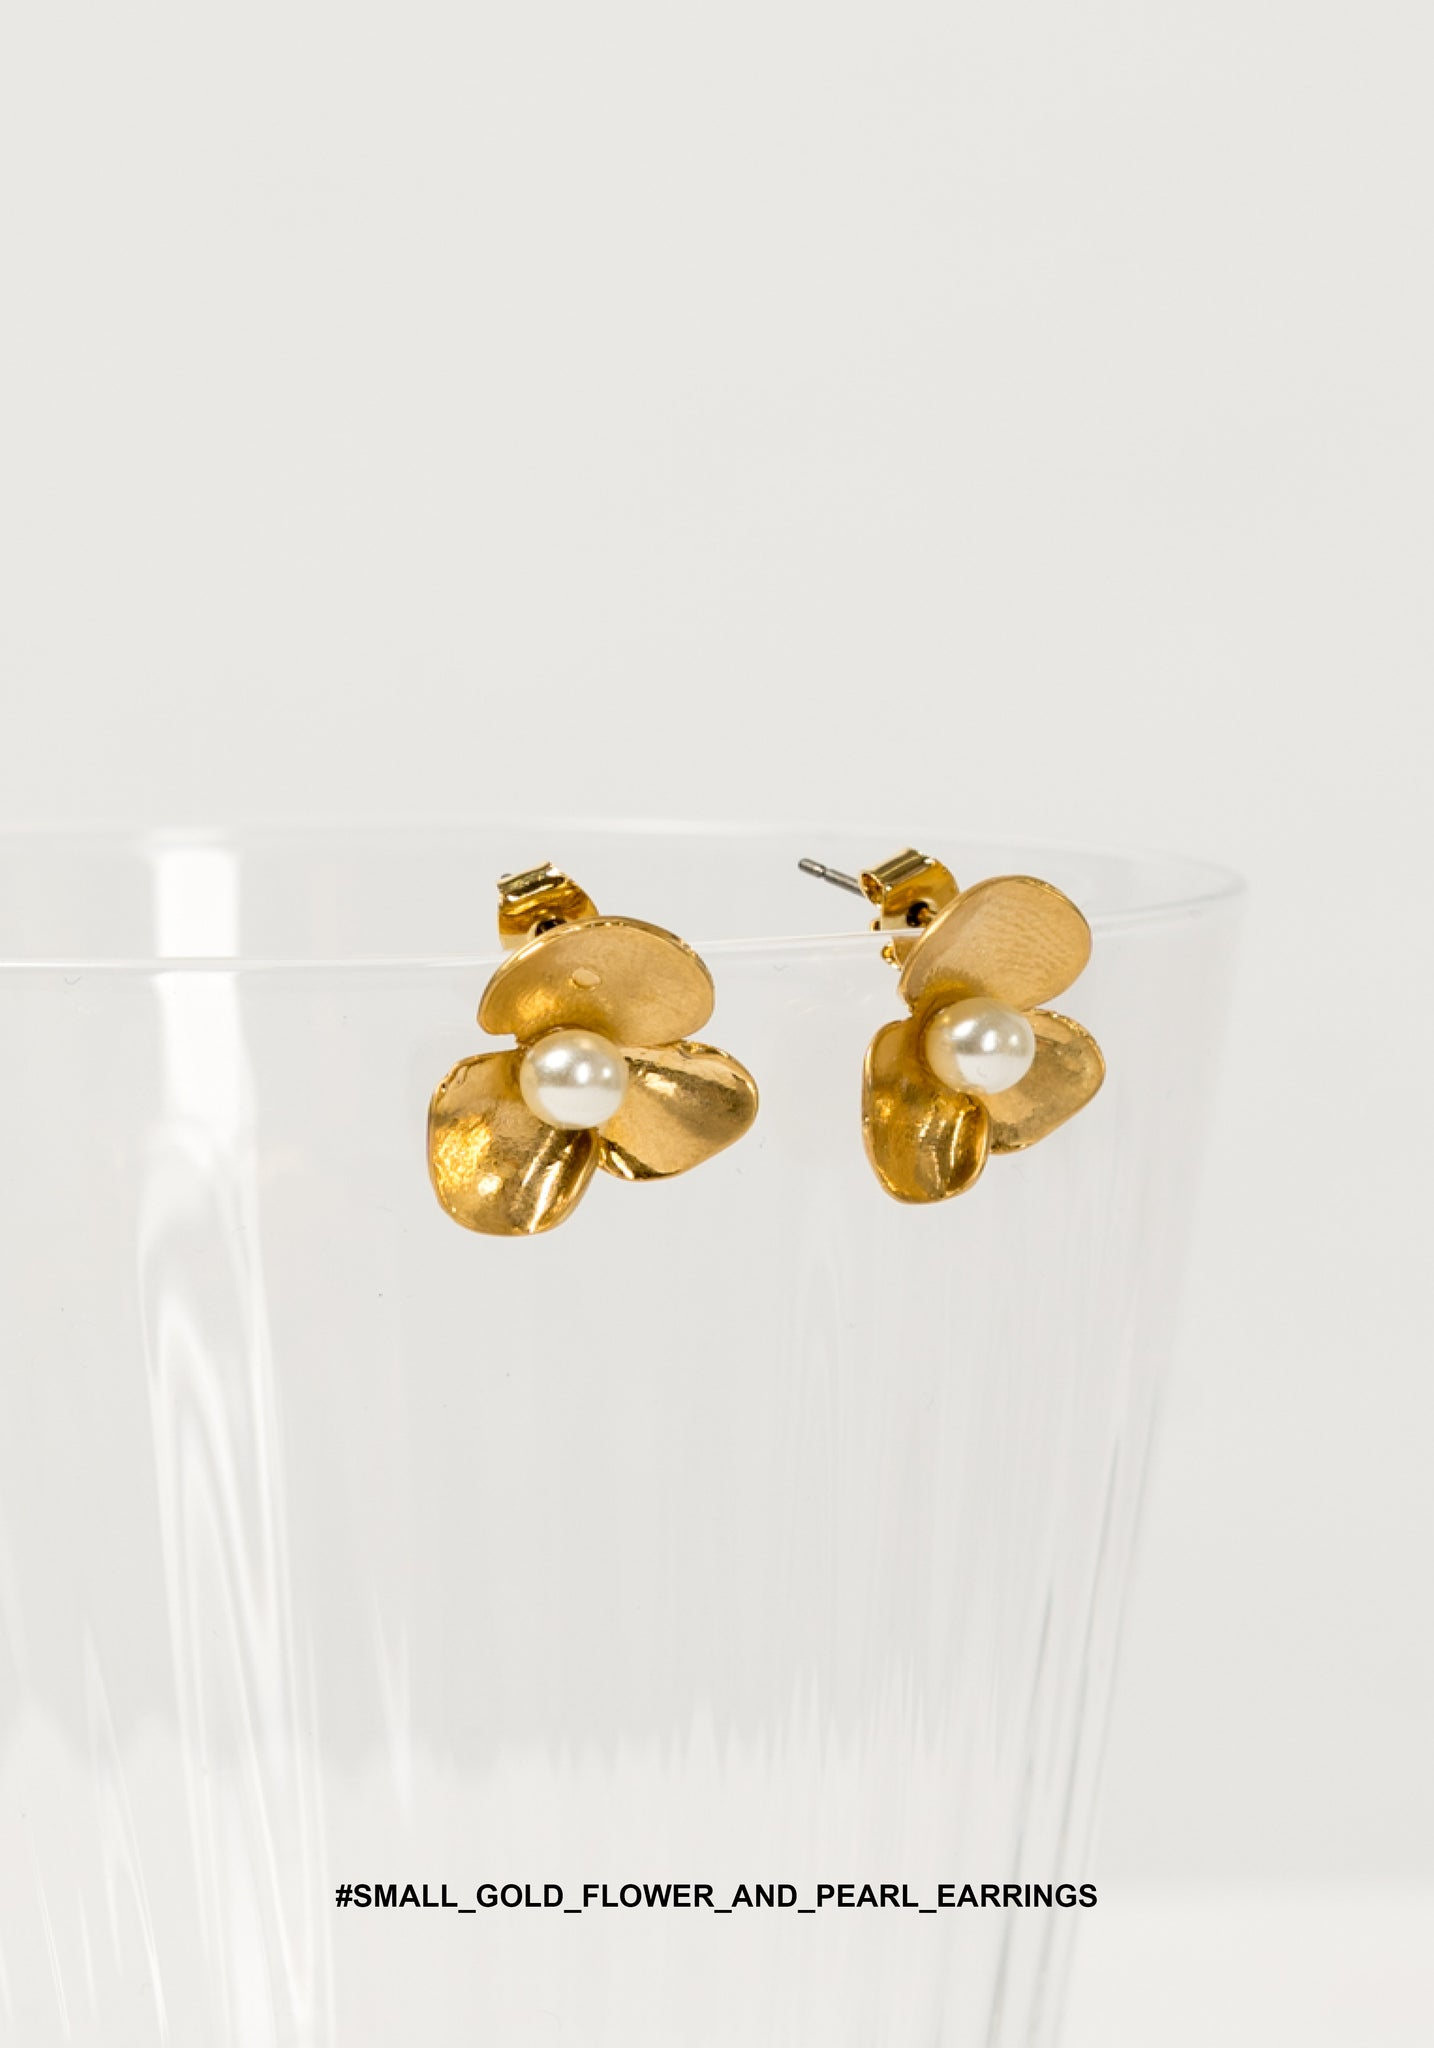 Small Gold Flower And Pearl Earrings